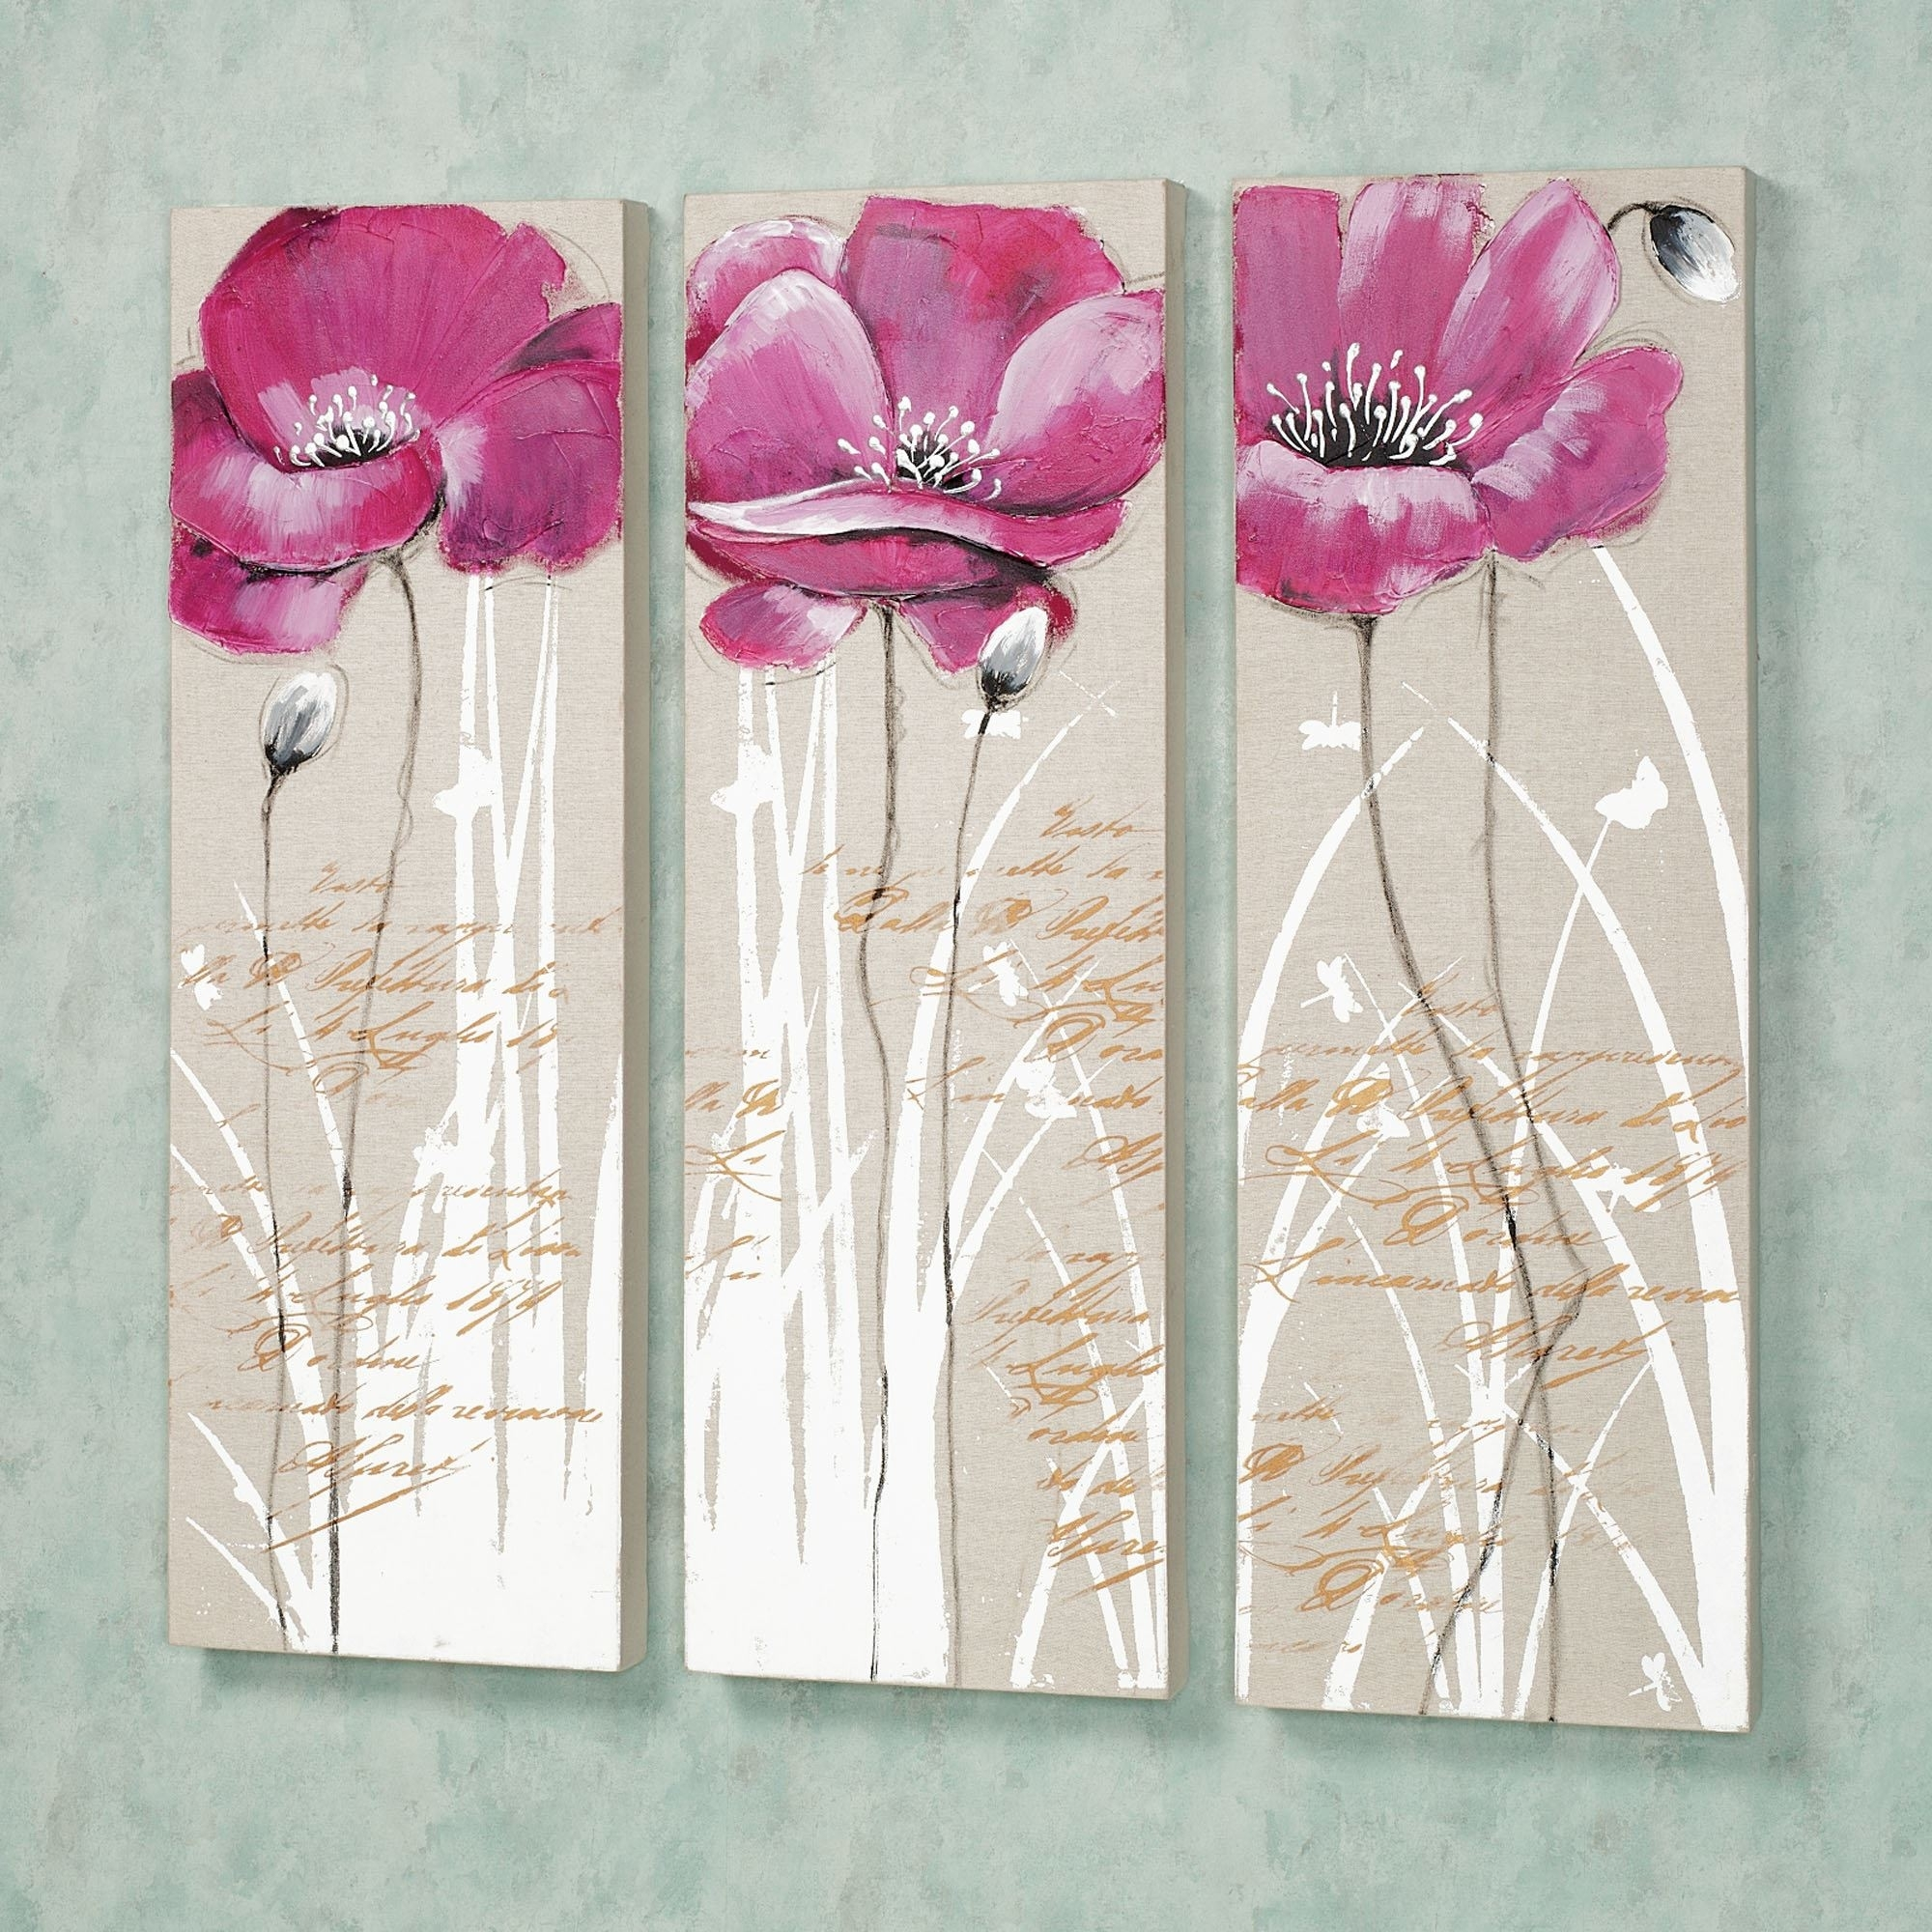 Floral And Botanical Canvas Wall Art | Touch Of Class Within Most Recently Released Pink Canvas Wall Art (View 13 of 15)